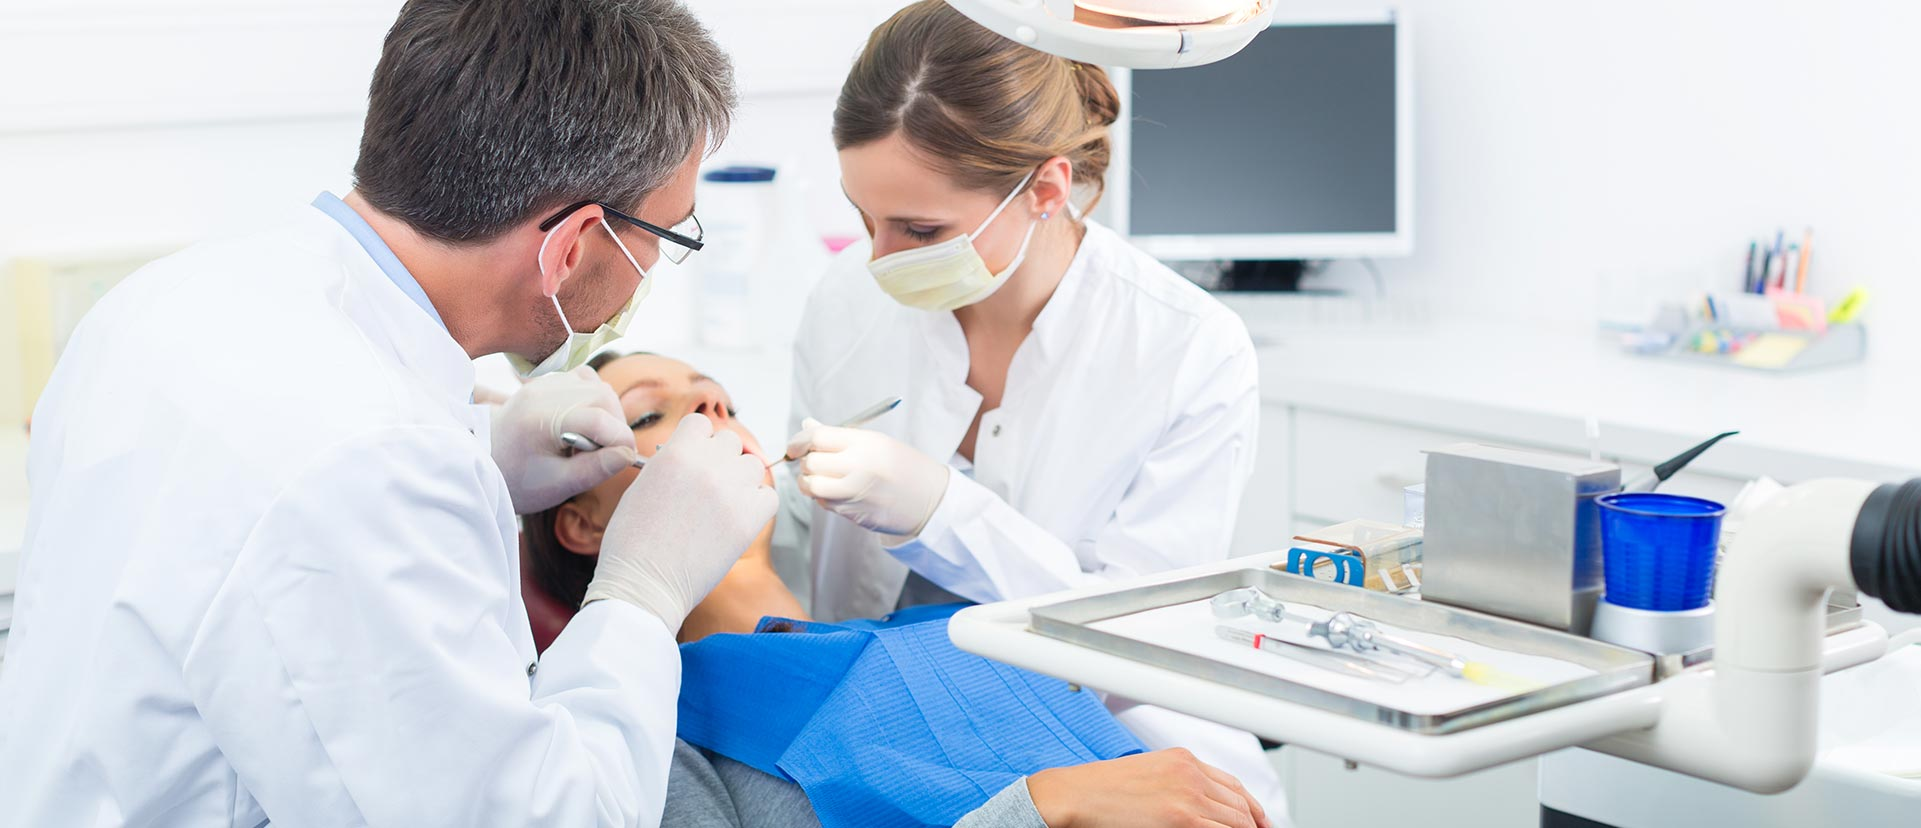 Dentists are performing a dental surgery